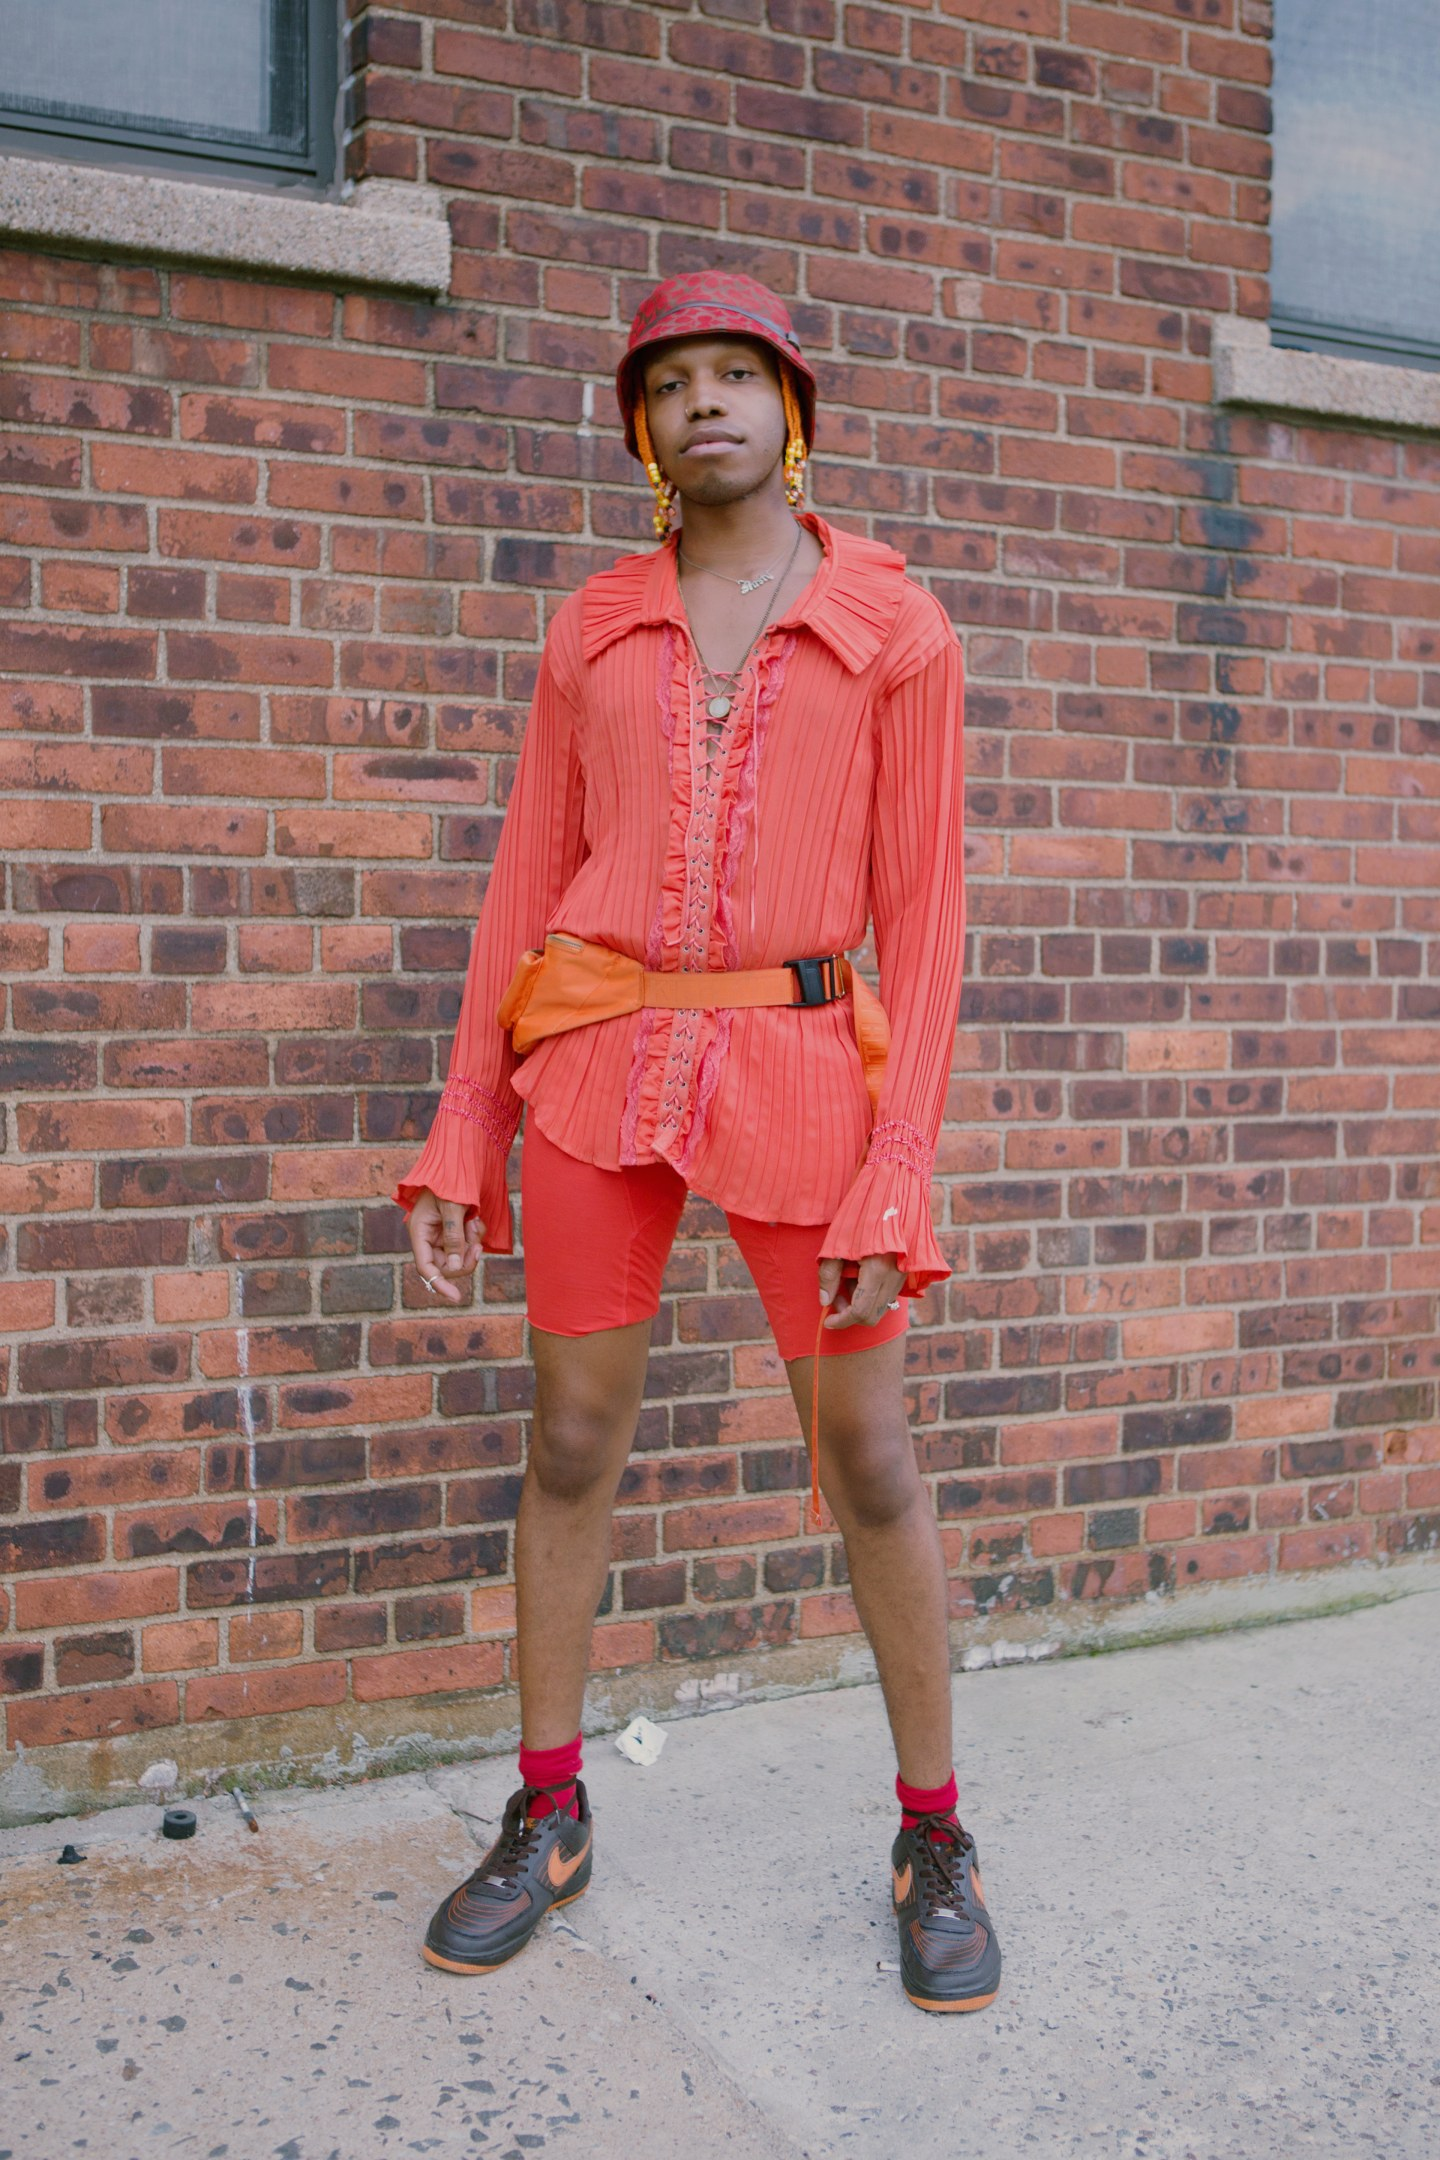 People who went to Hypefest turned fall style super bright